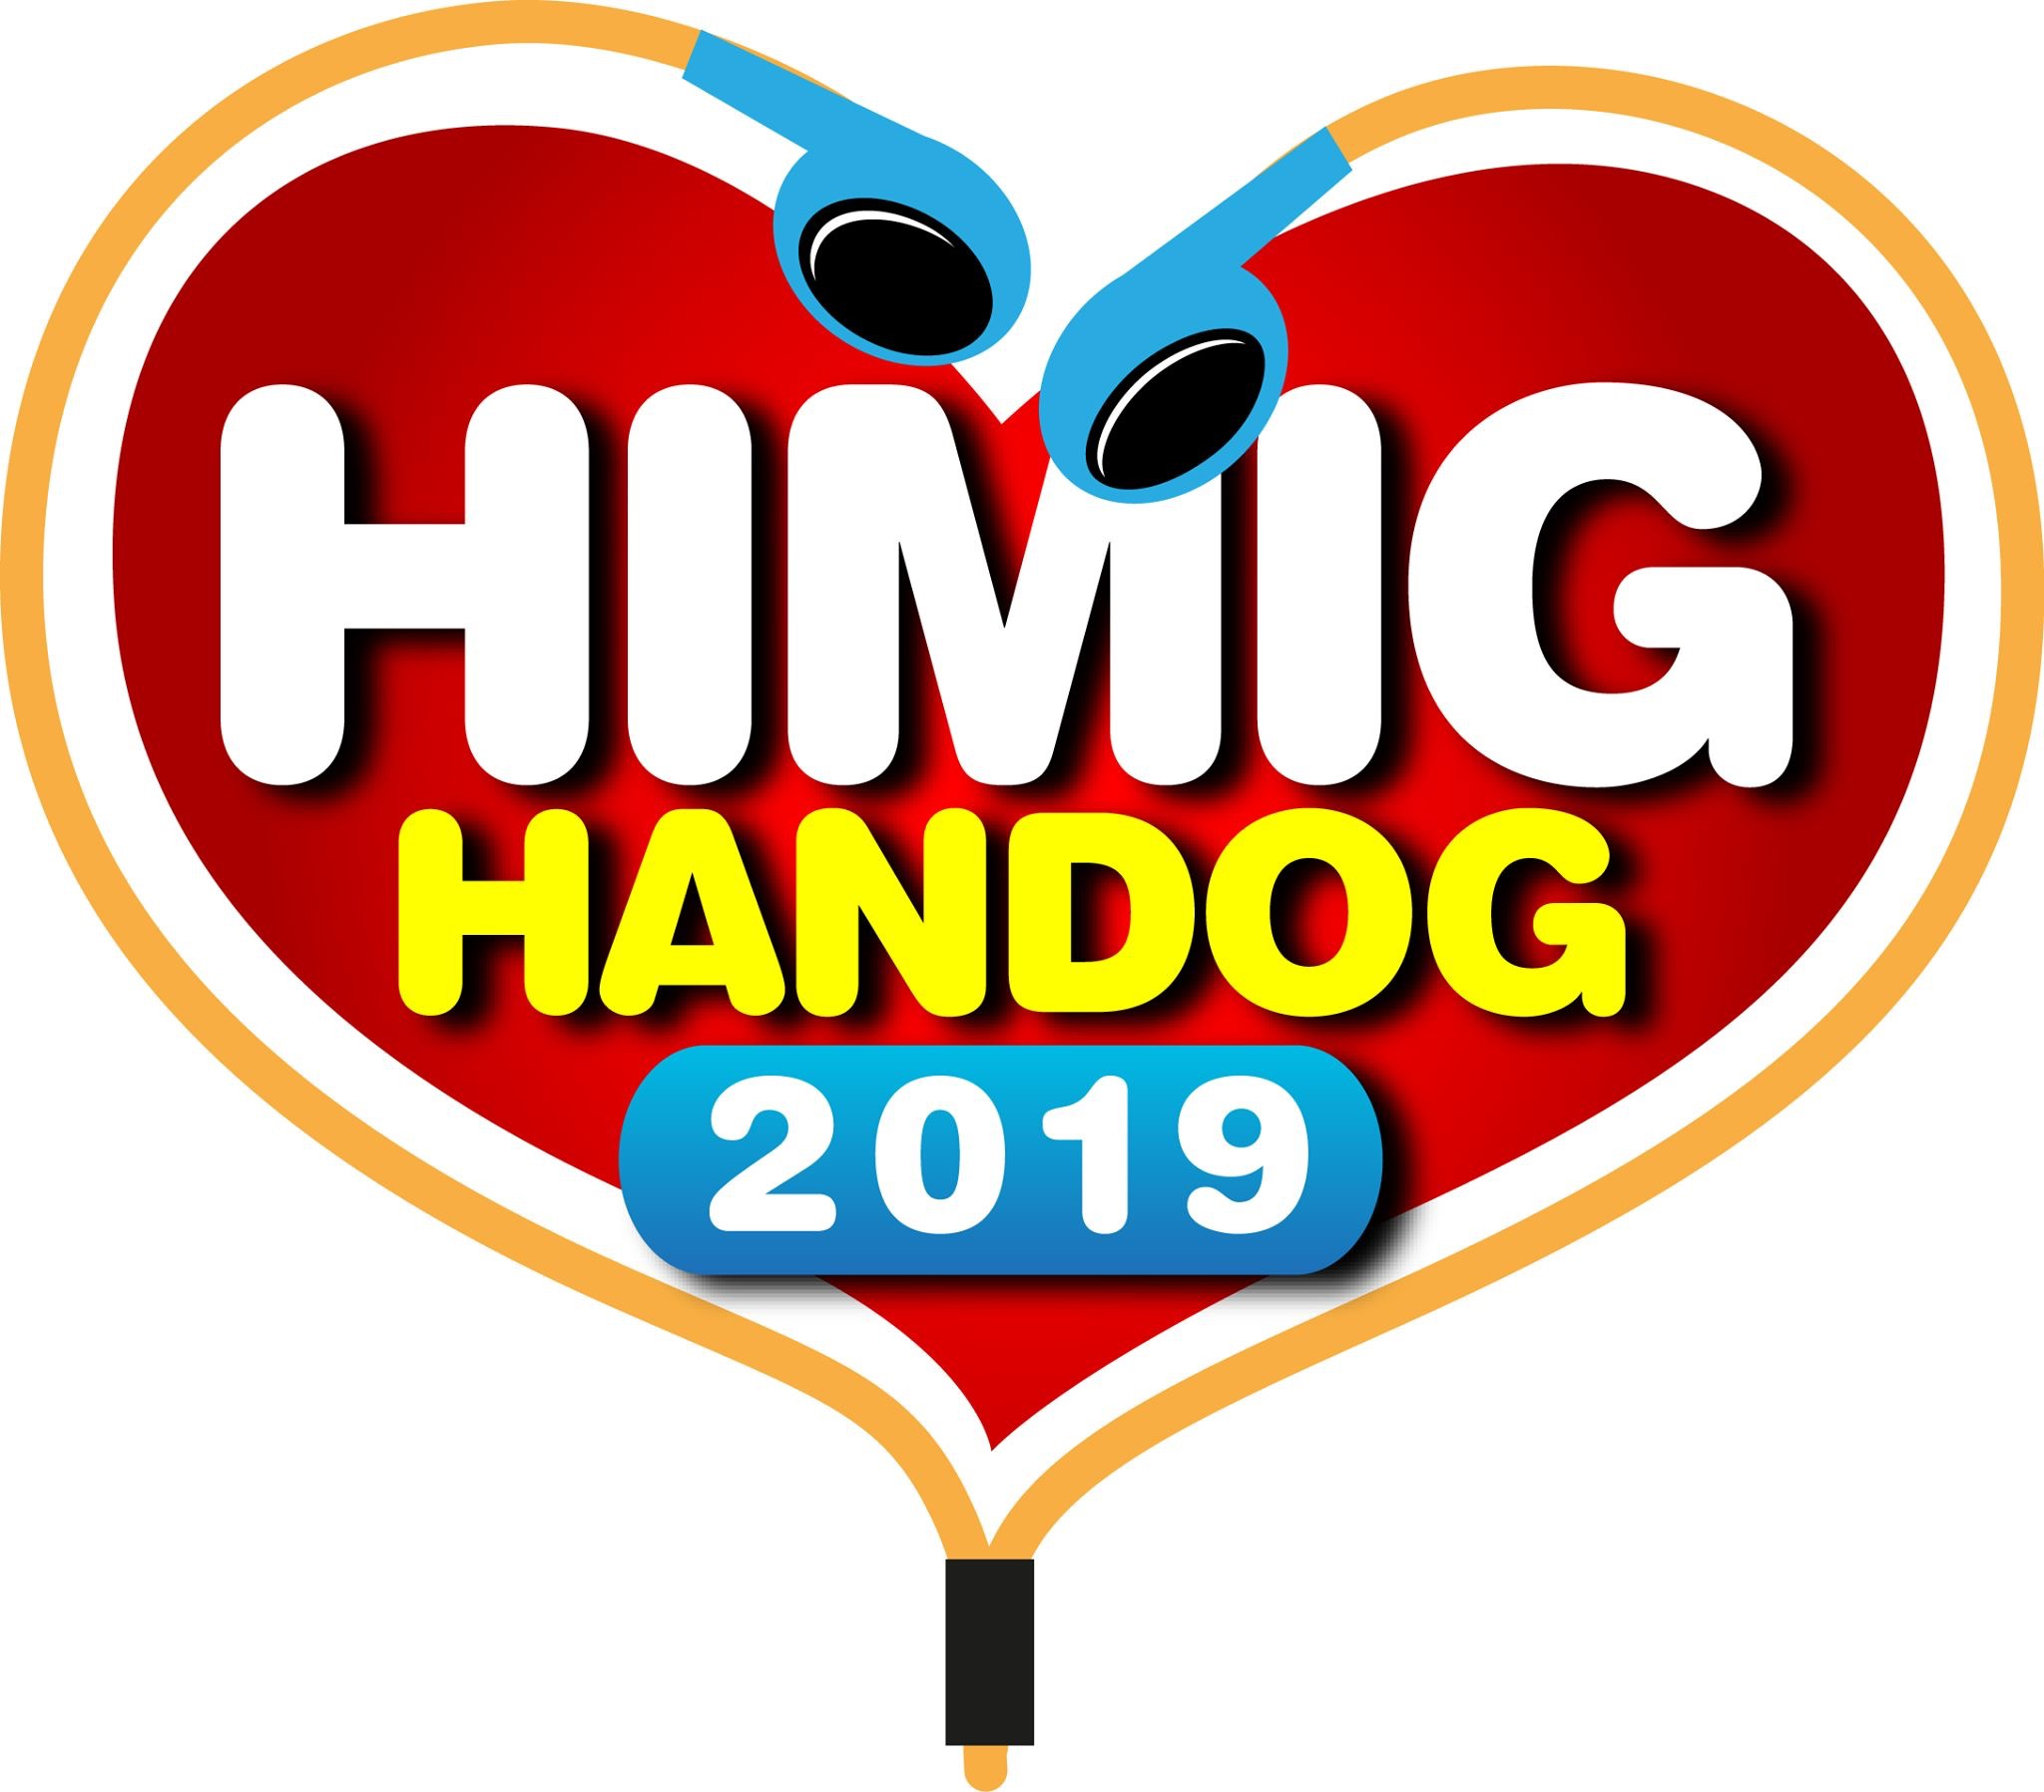 From 4,000, Down To 12: Himig Handog 2019 Is Ready!